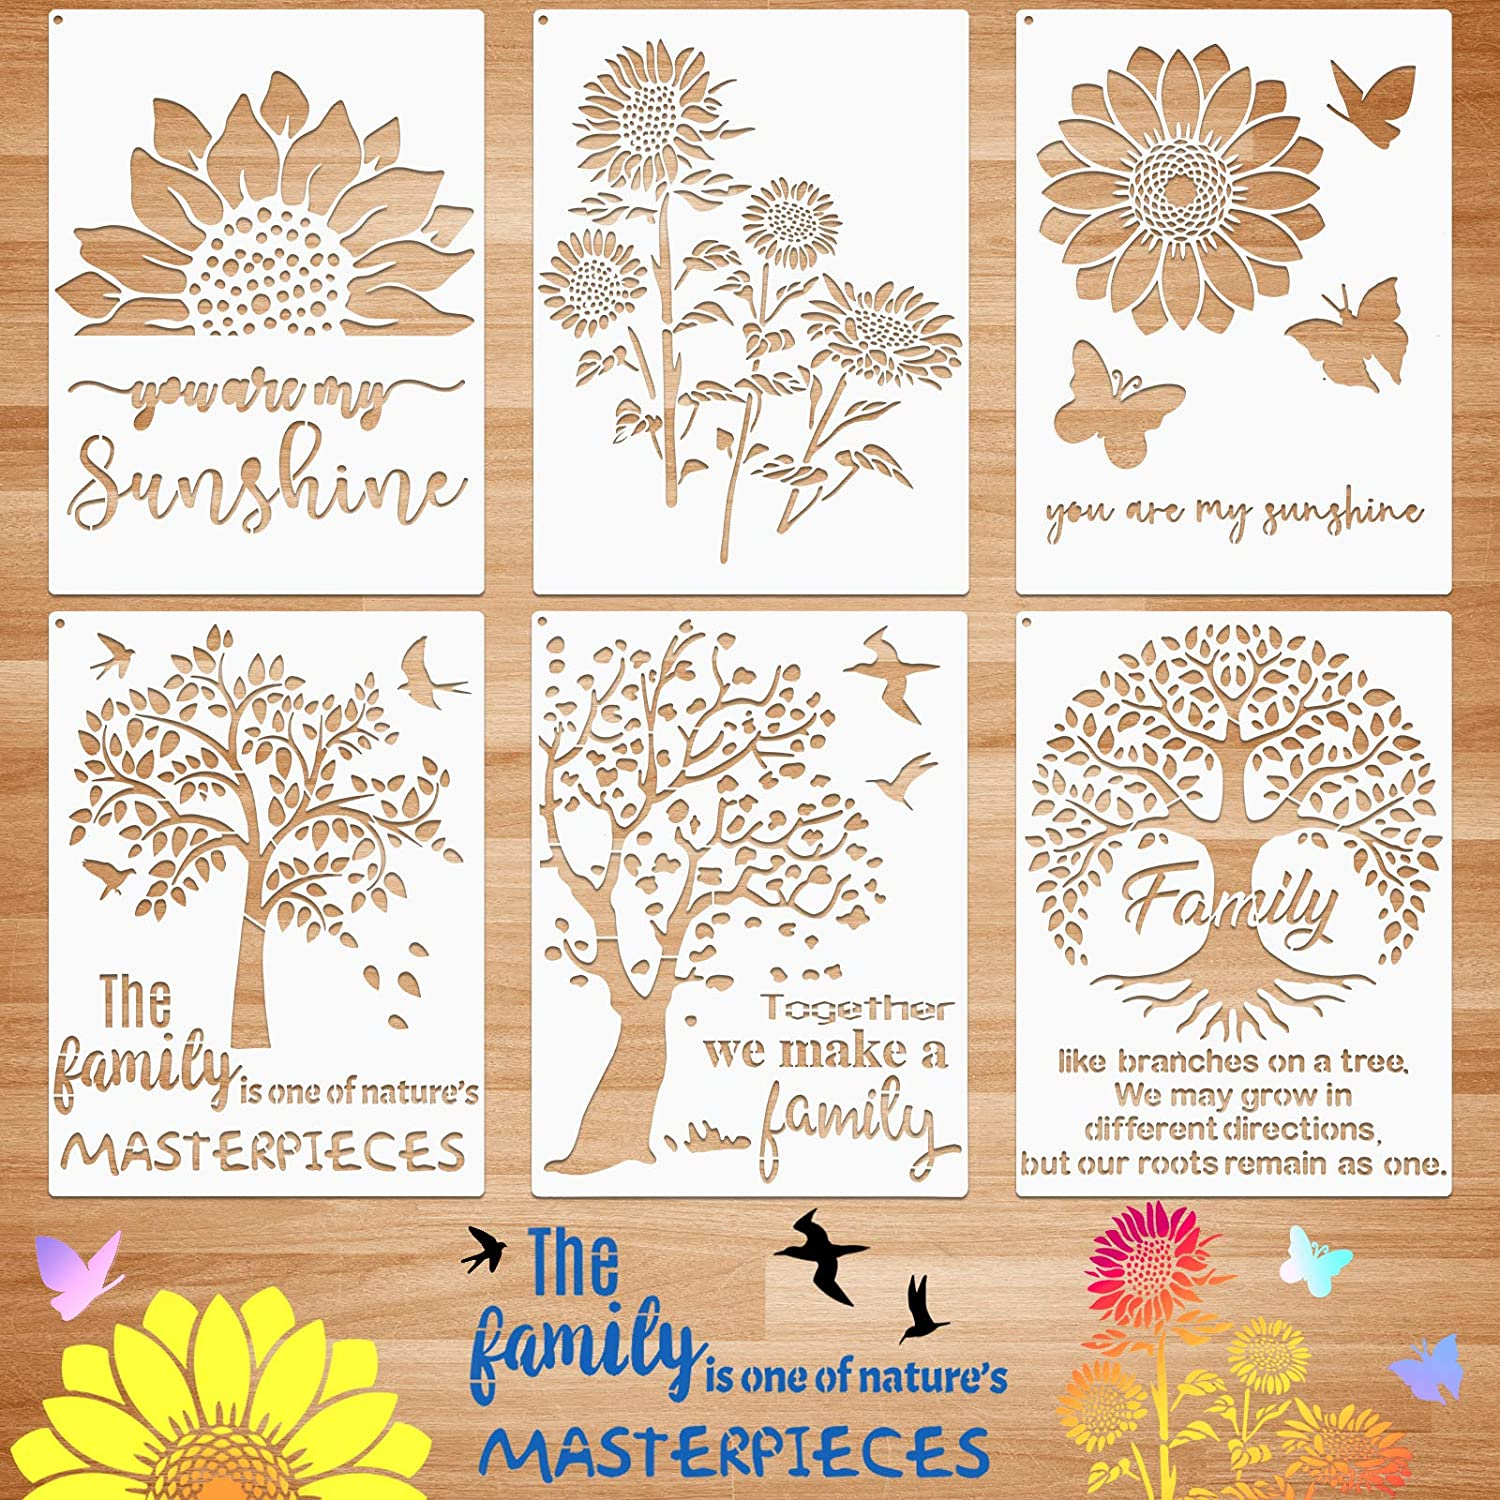 6 Pieces Sunflower Stencil Kit You are My Sunshine Stencil Family Tree Butterfly Stencil Reusable Mylar Template Stencils with Metal Open Ring for Painting on Wood Wall Home Decor